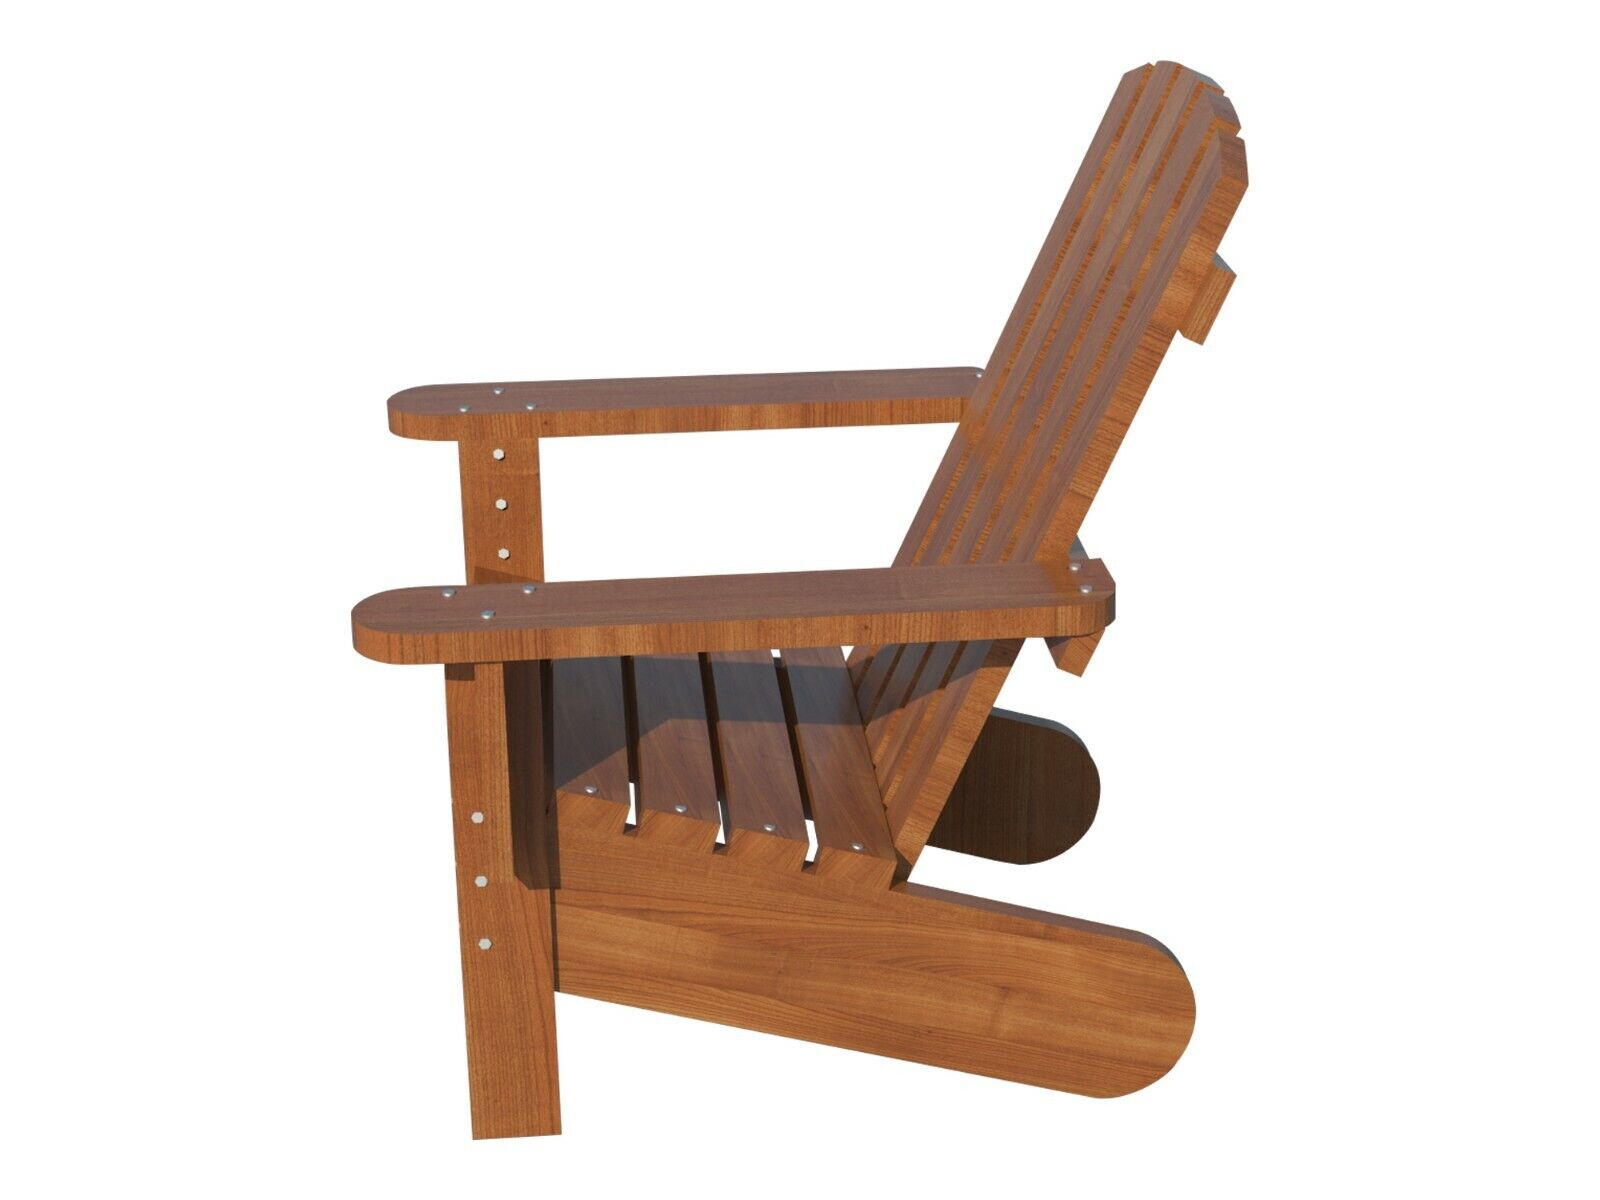 Adirondack Chair Plans DIY Patio Lawn Deck Garden Furniture Stool Outdoor  Wood